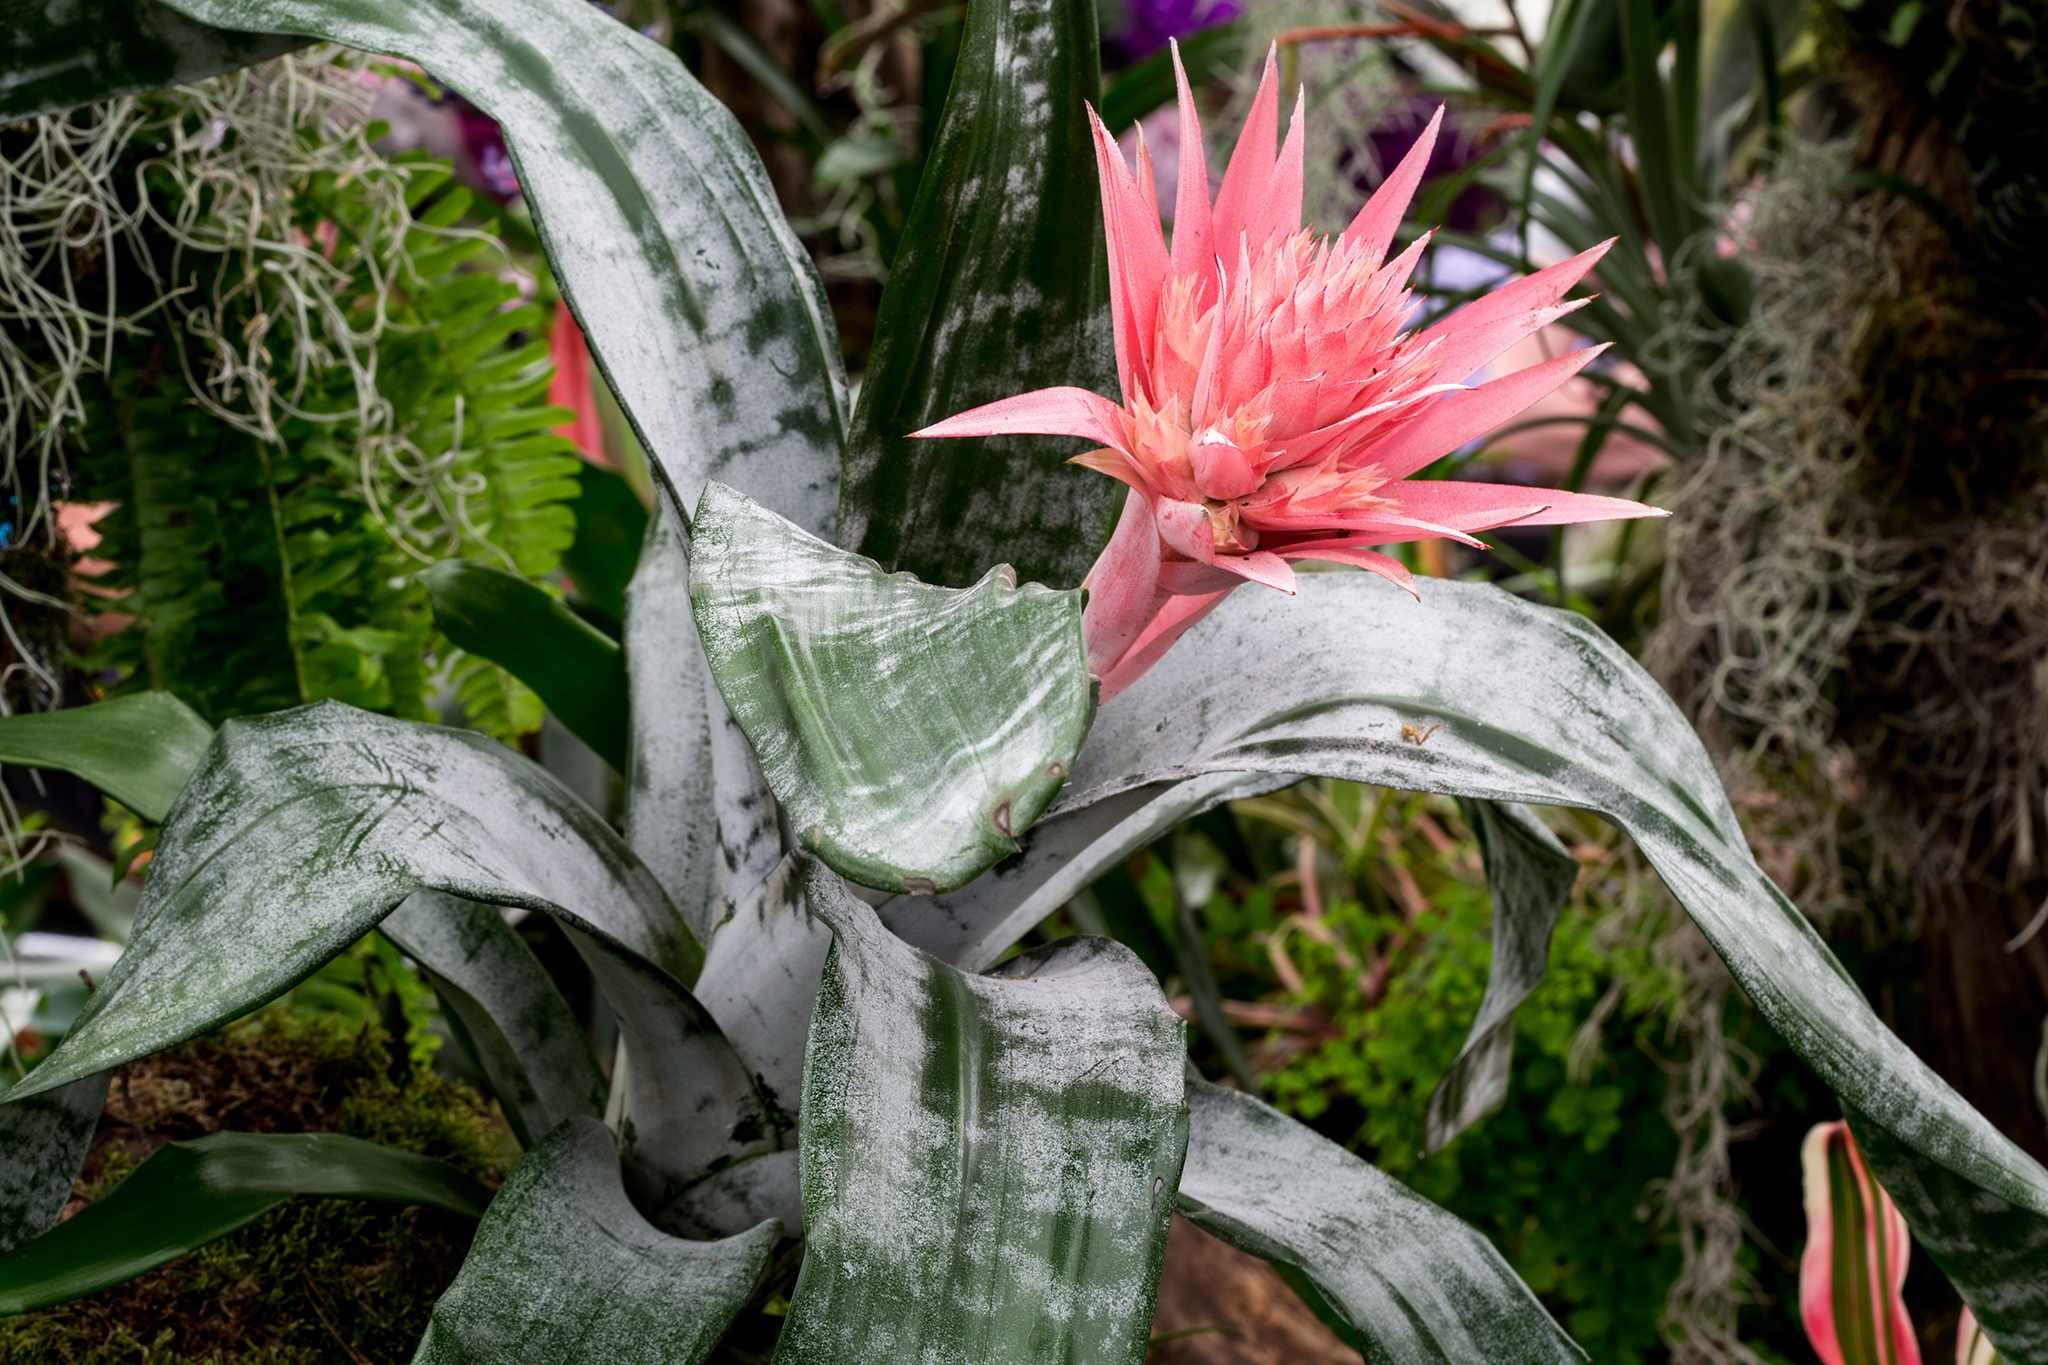 Aechmea fasciata 'Primera': dusky pink flowers on silvered green leaves